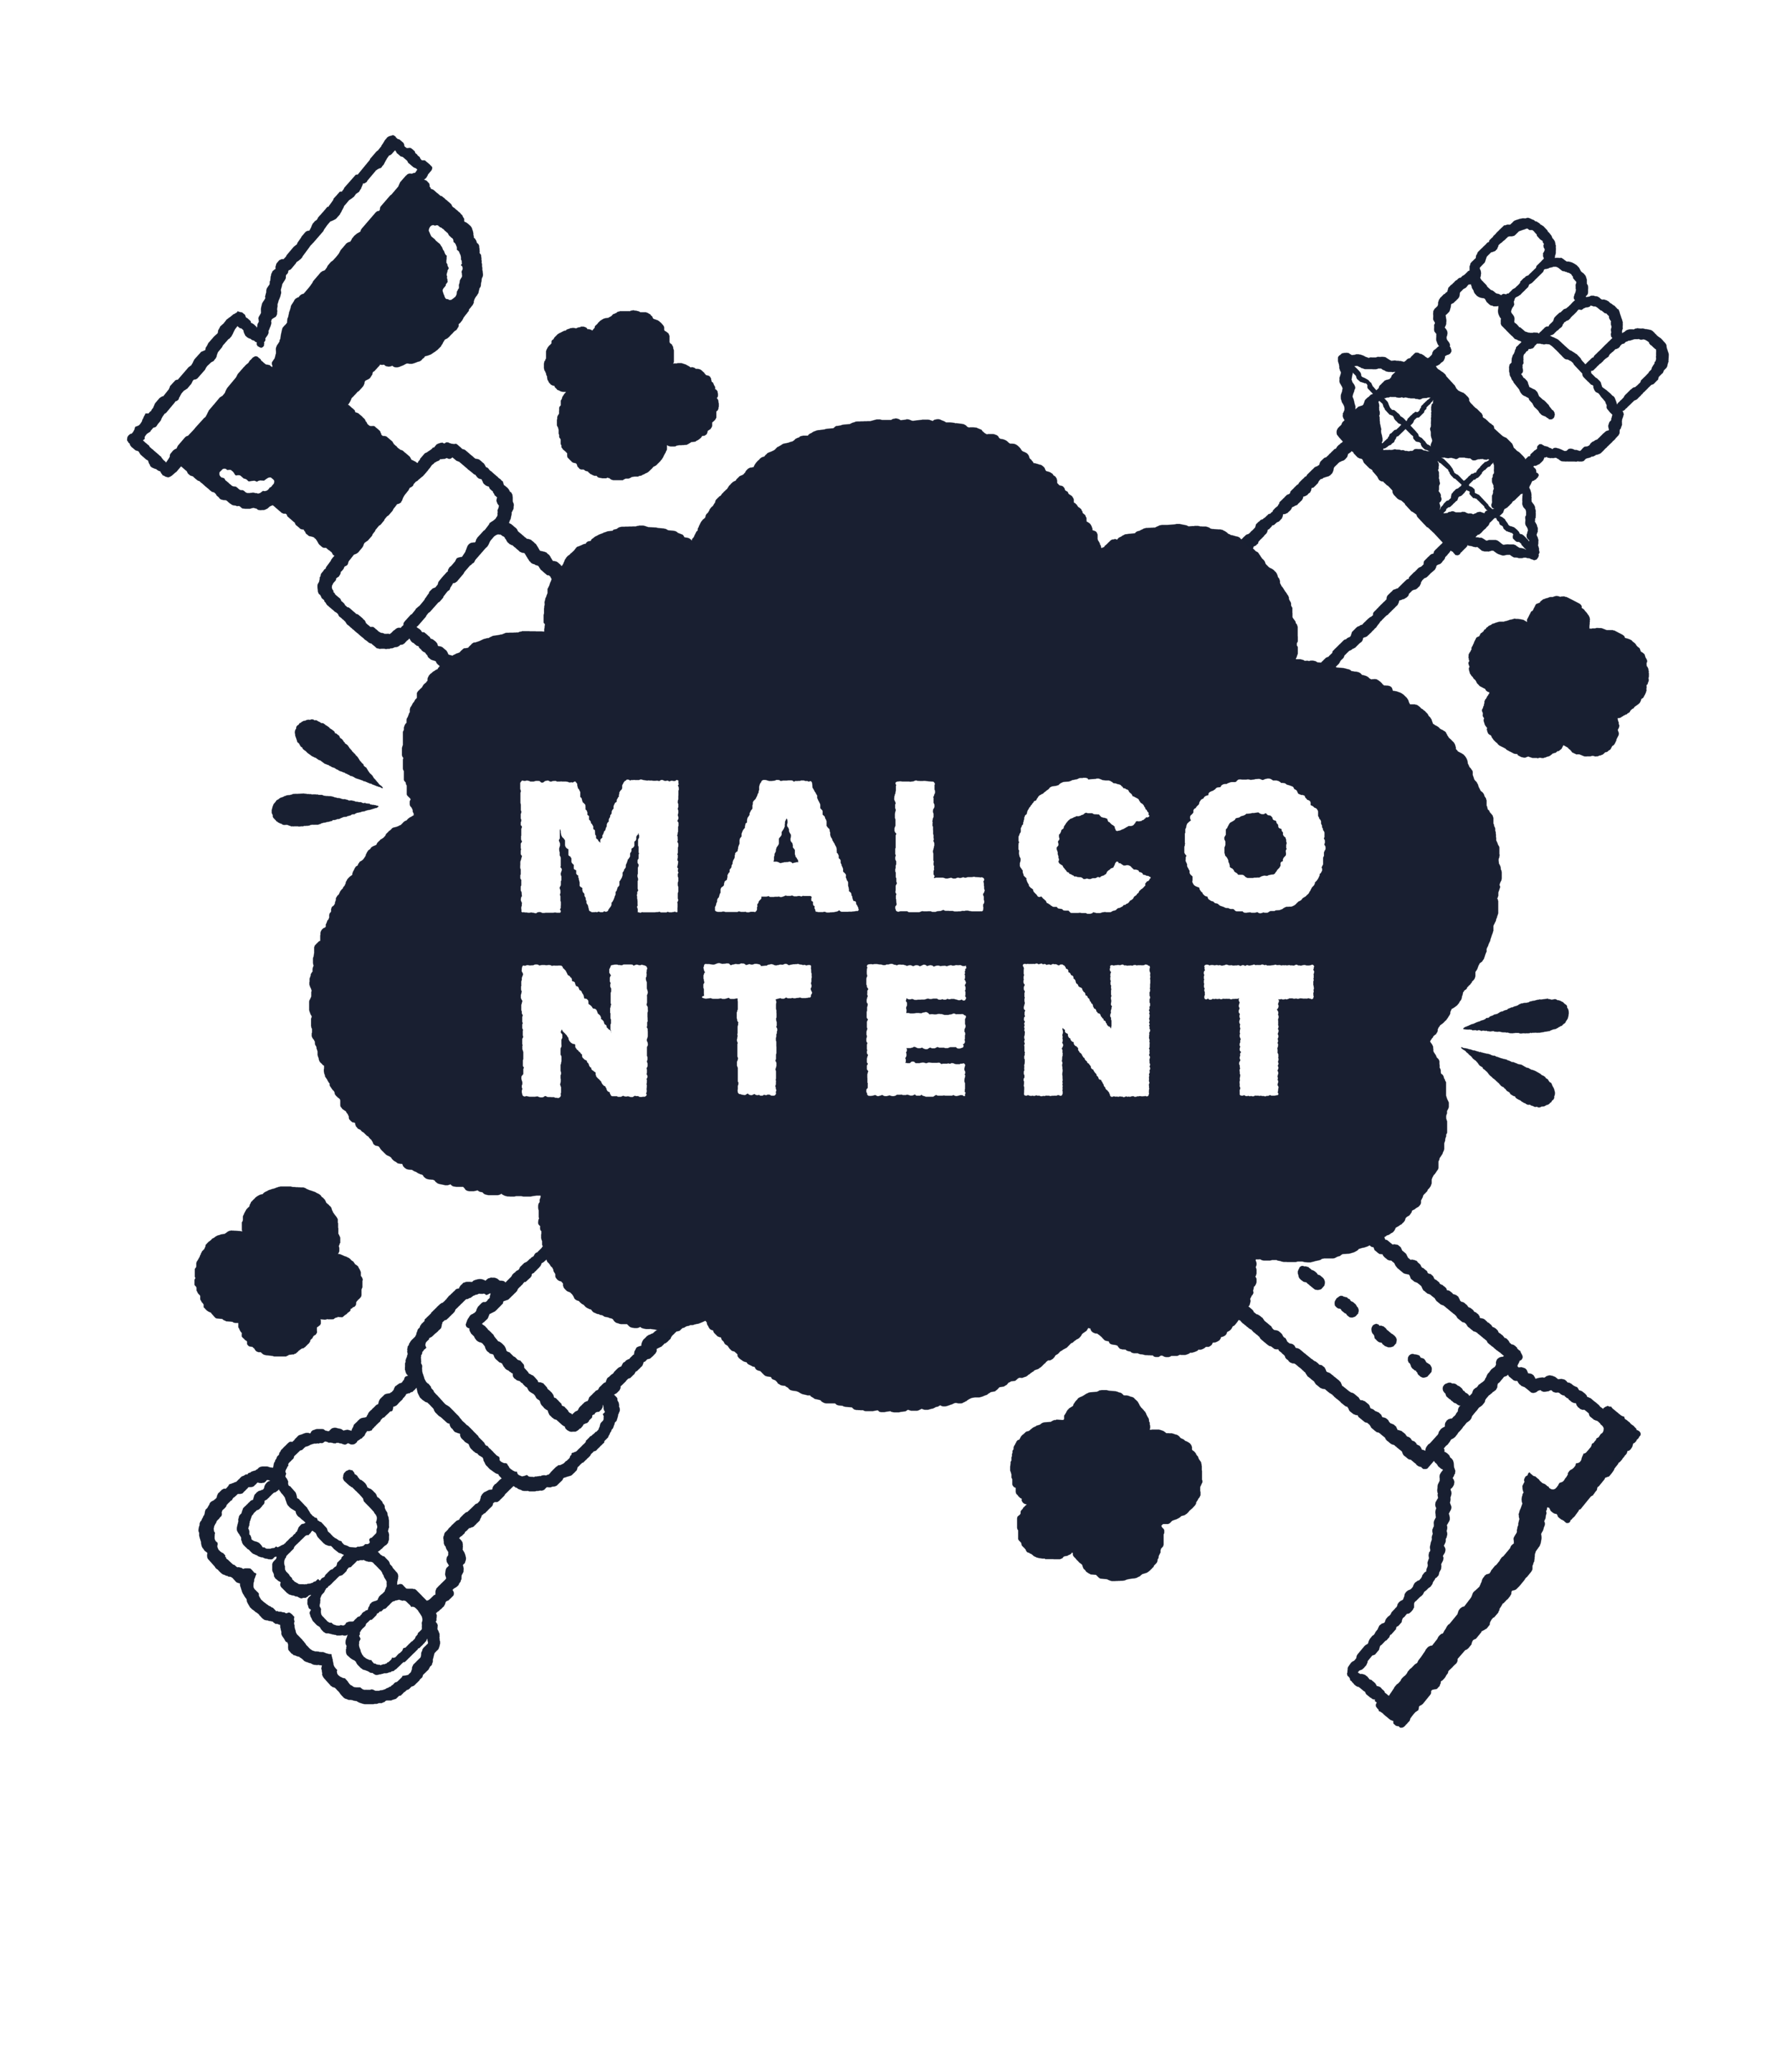 MALCONTENT Fight